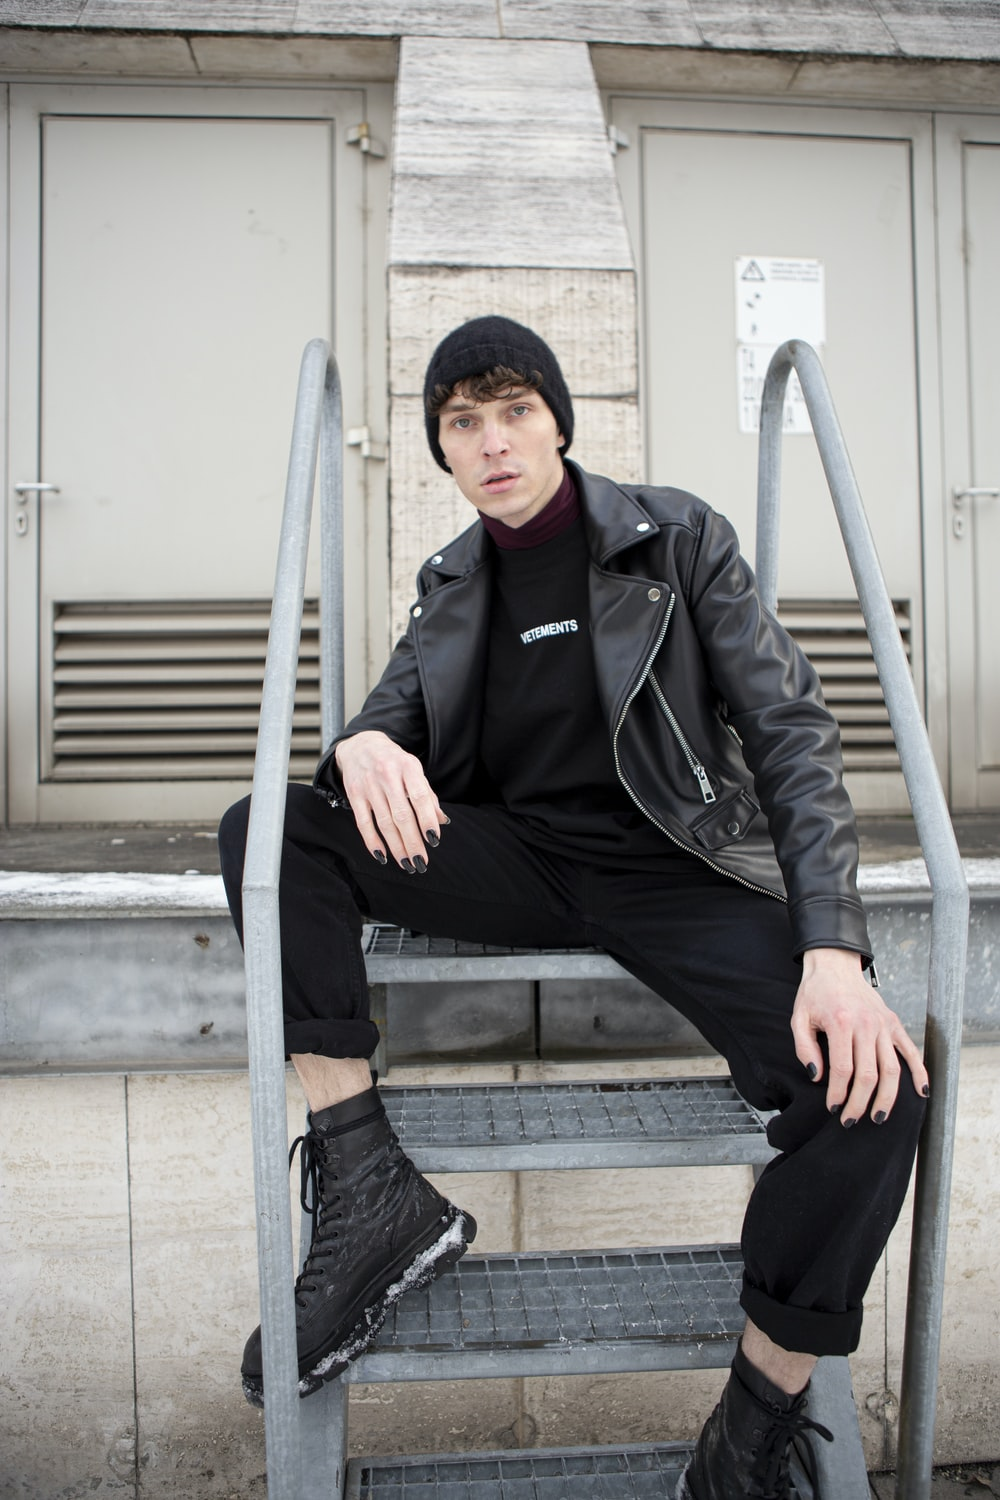 man in black jacket and black pants sitting on stairs